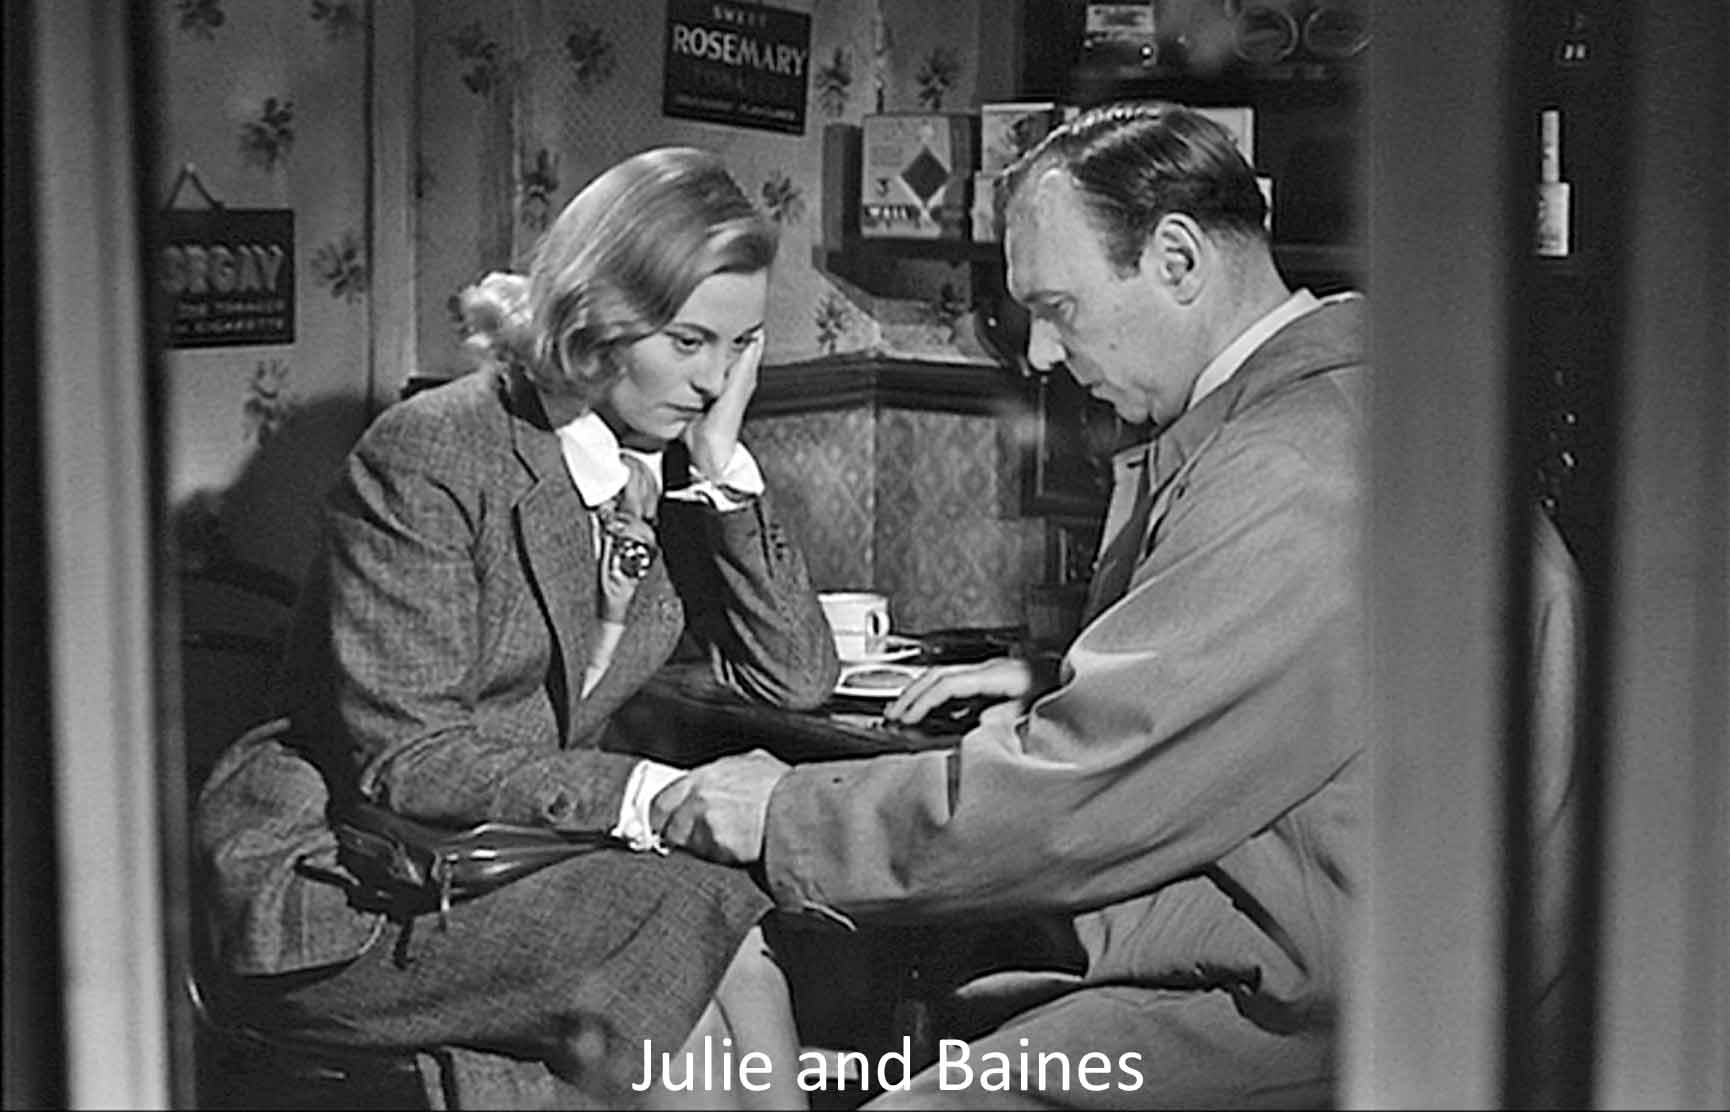 Julie and Baines